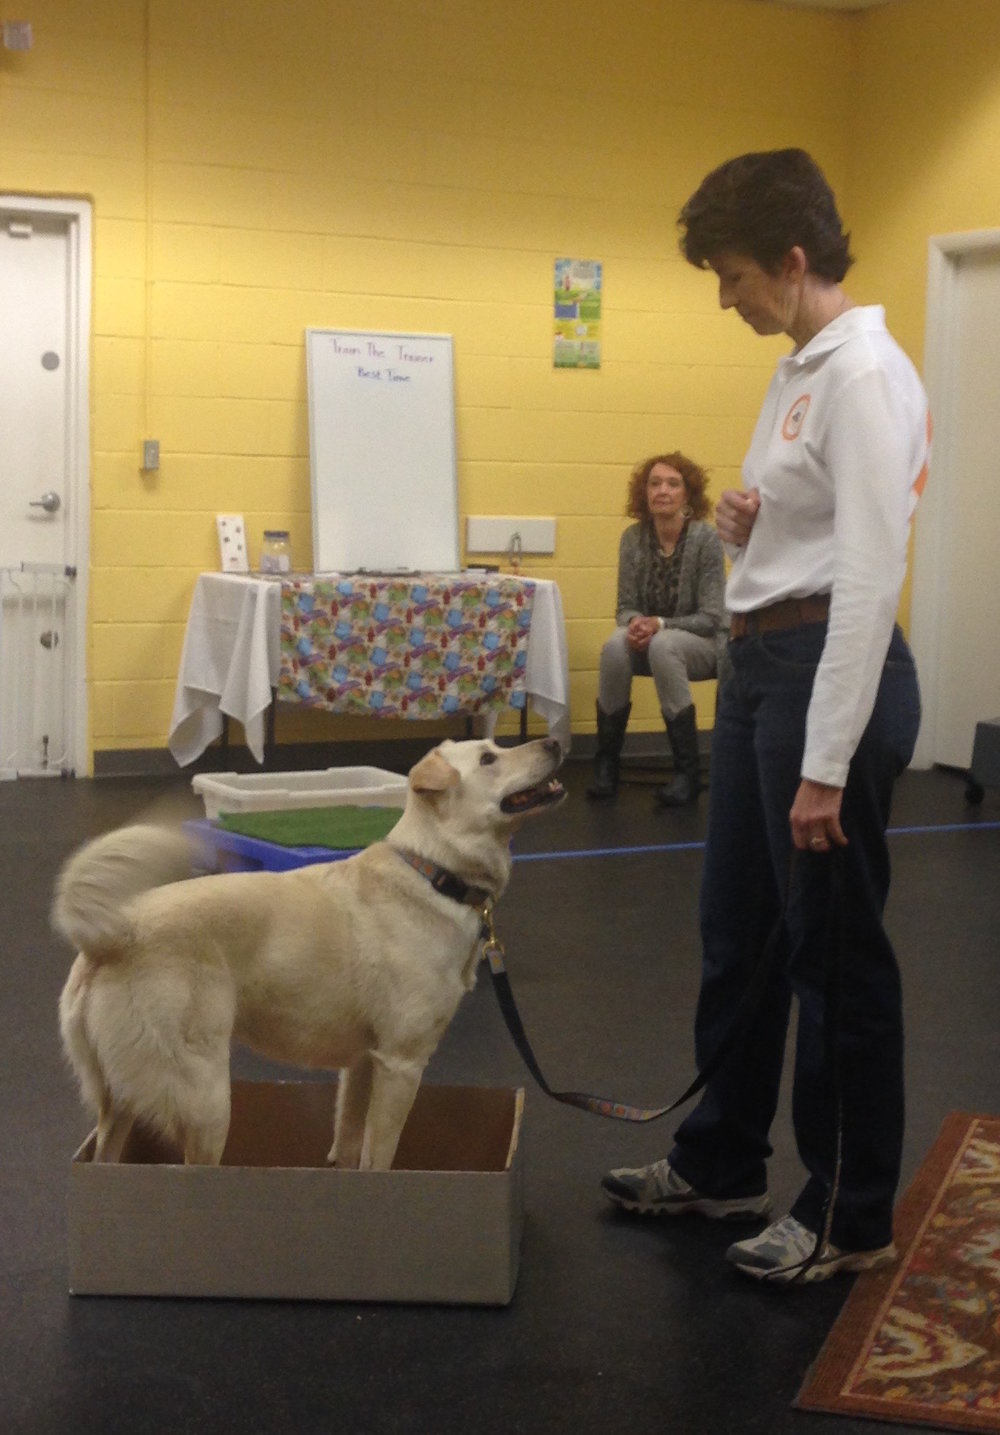 Kota focuses on trainer Cindy Morgan during a shaping demonstration at A Loyal Companion's 3rd annual Open House.